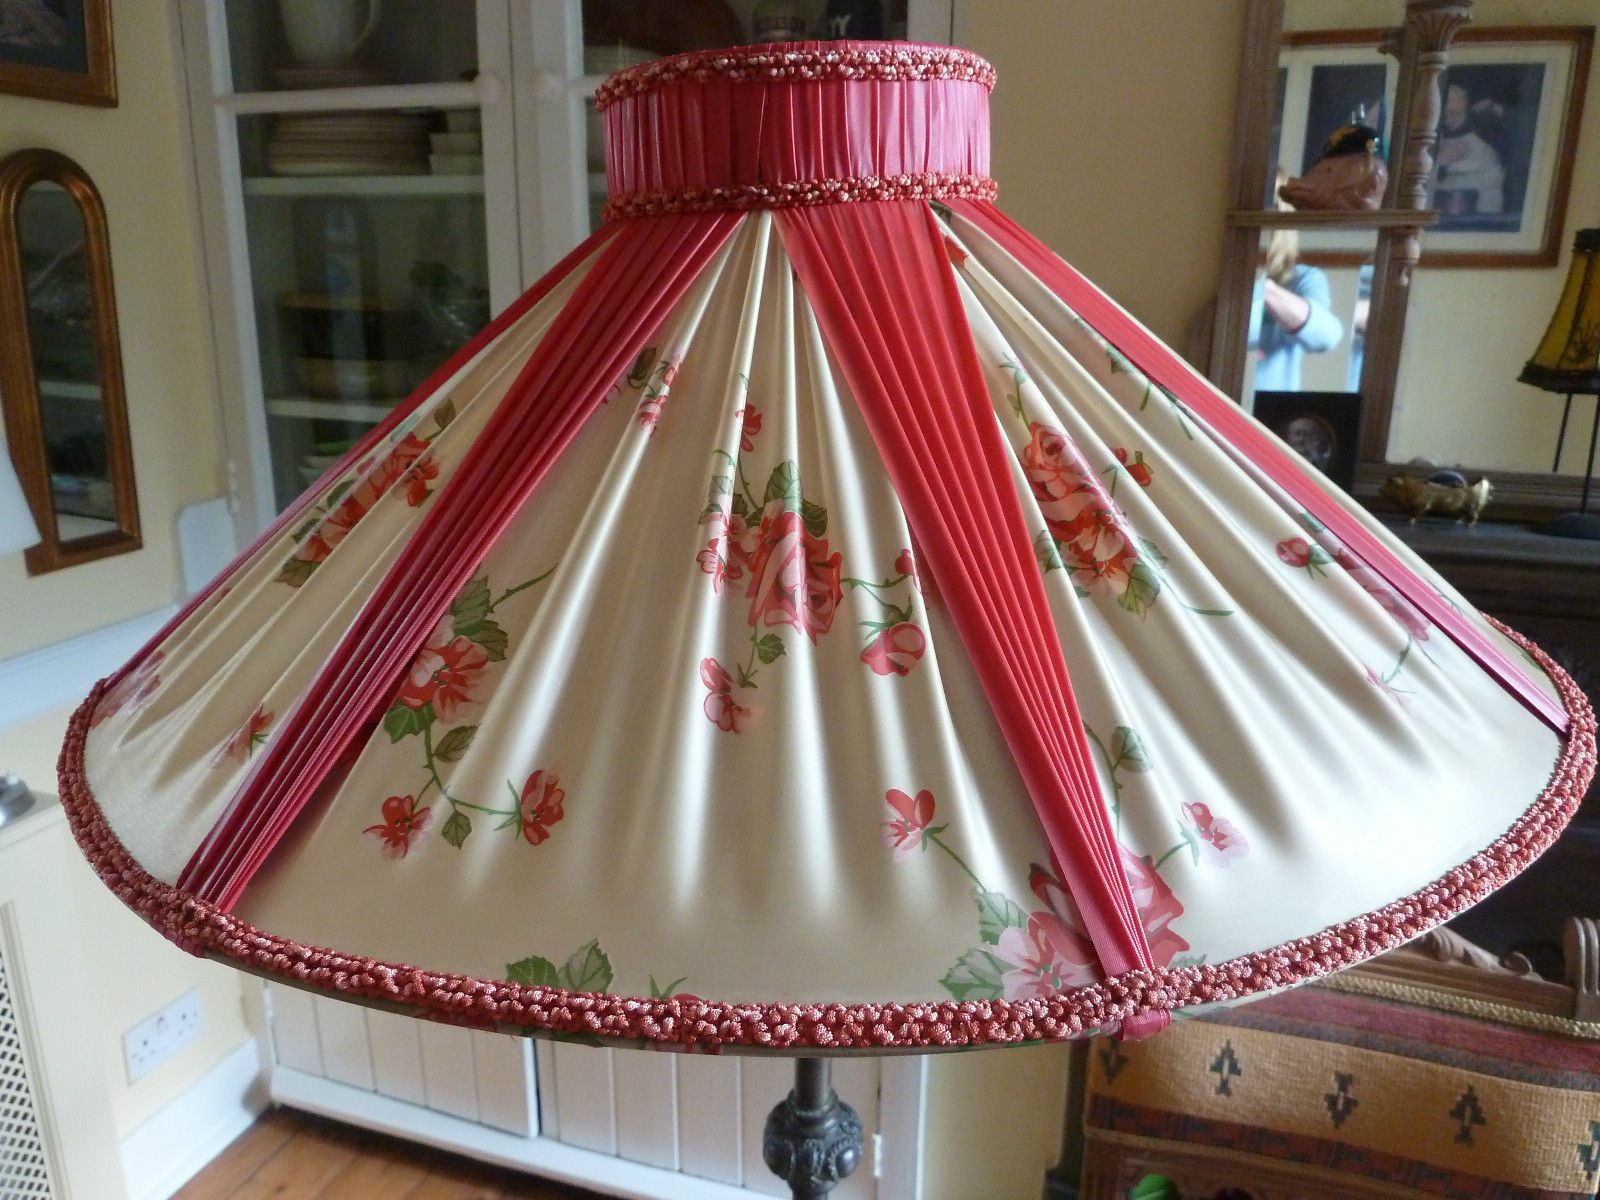 1950s shade for a standard lamp lampshadesbeautiful pinterest 1950s shade for a standard lamp aloadofball Choice Image